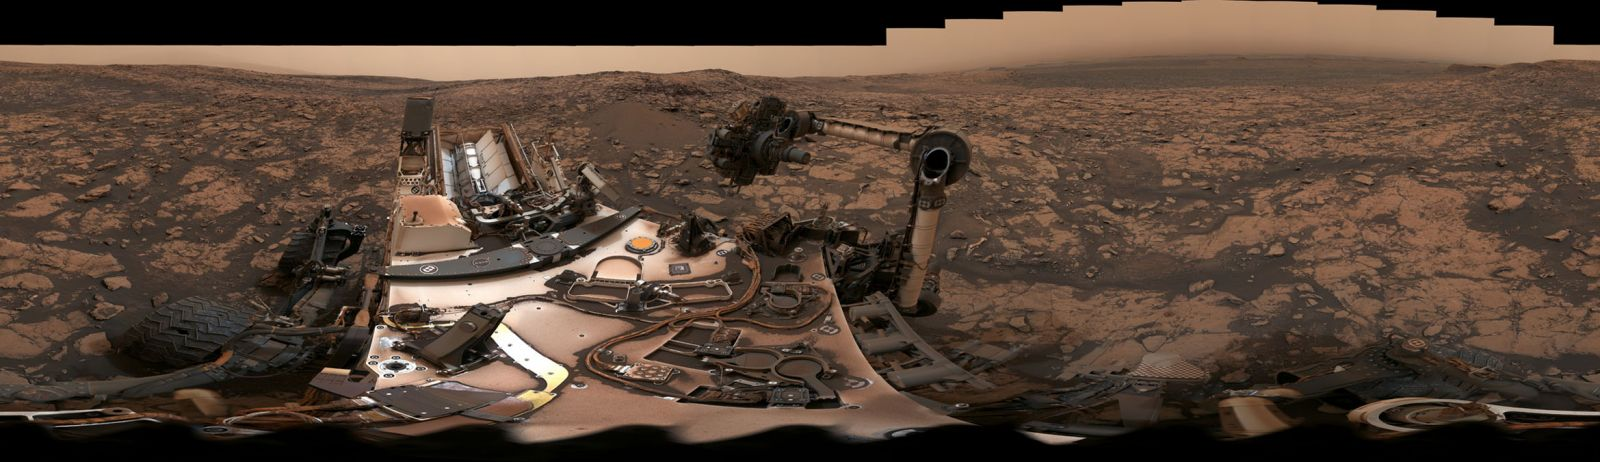 Panoramic view of Curiosity's surroundings. Image Credit: NASA / JPL-Caltech